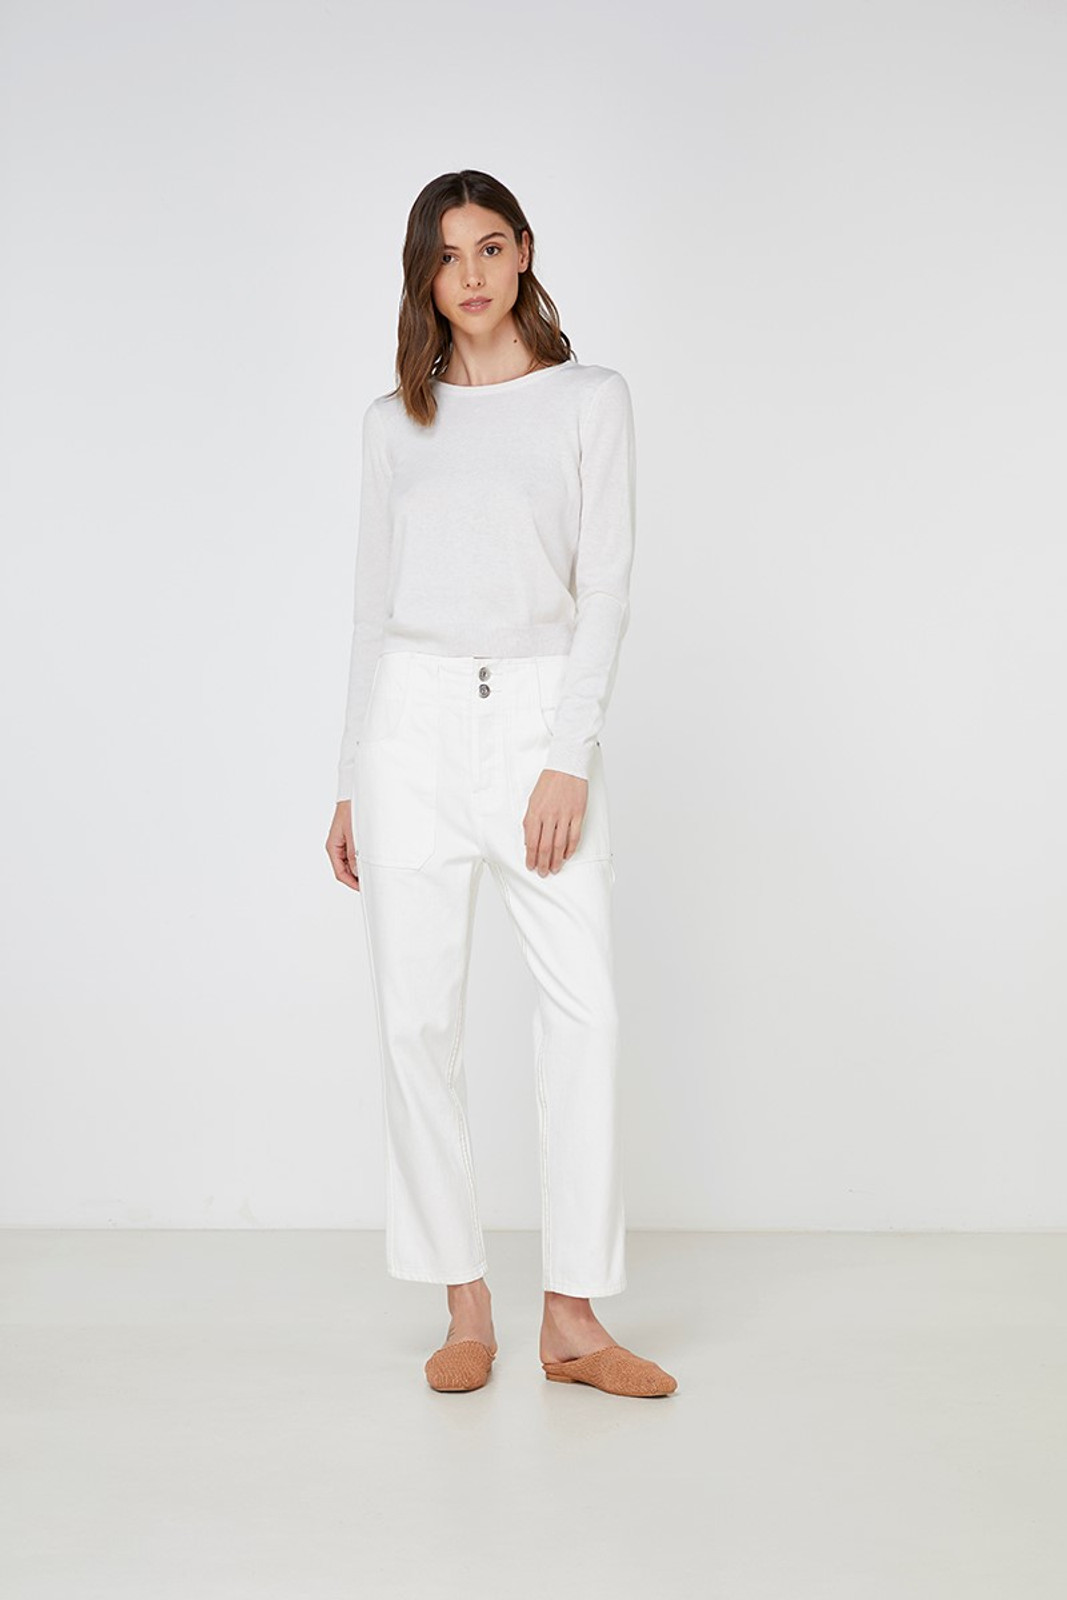 Elka Collective Gale Knit White  3